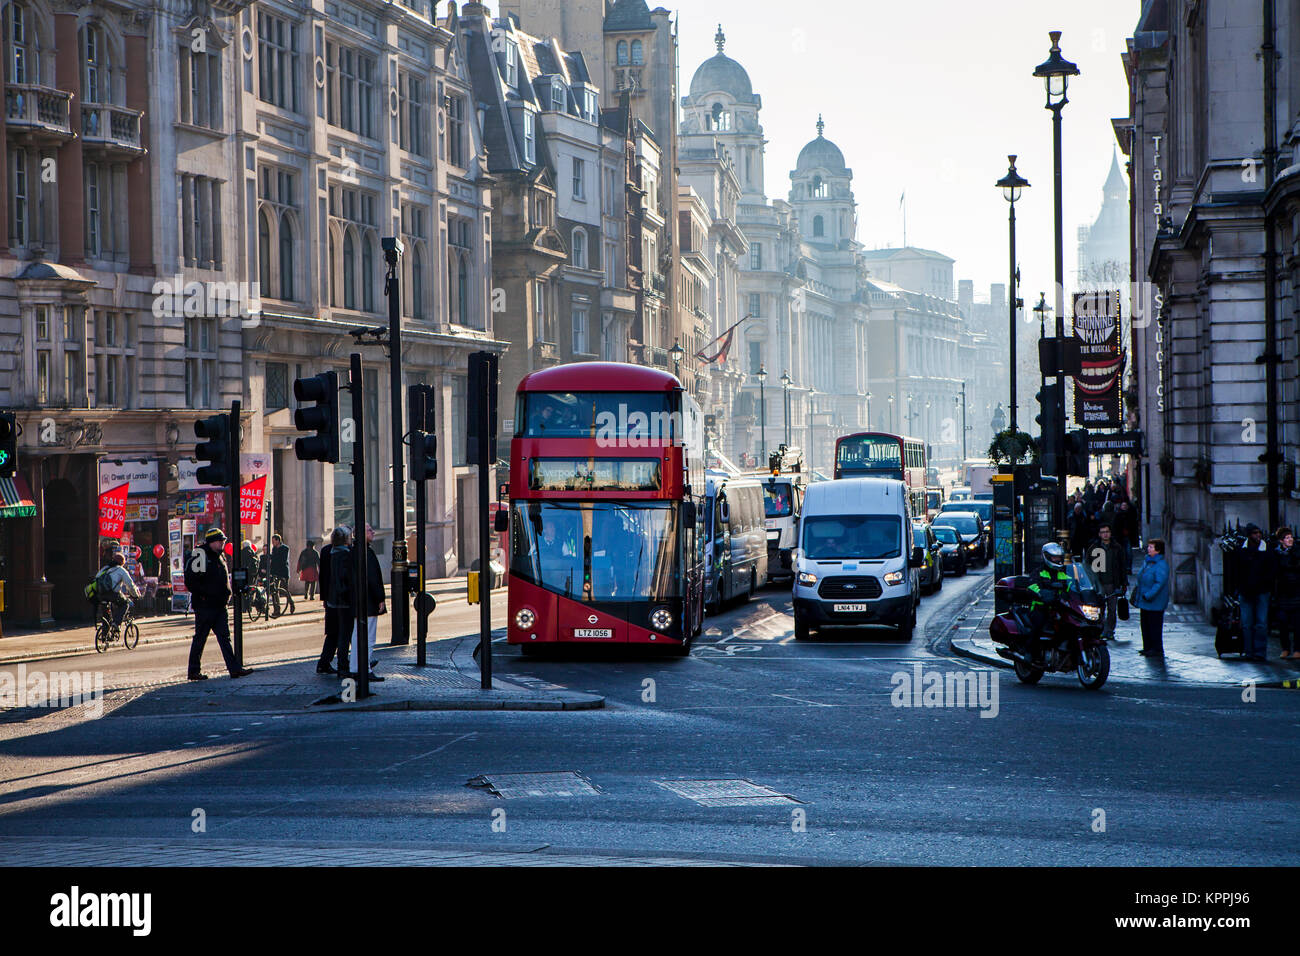 LONDON, UNITED KINGDOM - DECEMBER 12th, 2017: Morning traffic on Whitehall. Whitehall is a road in the City of Westminster, - Stock Image